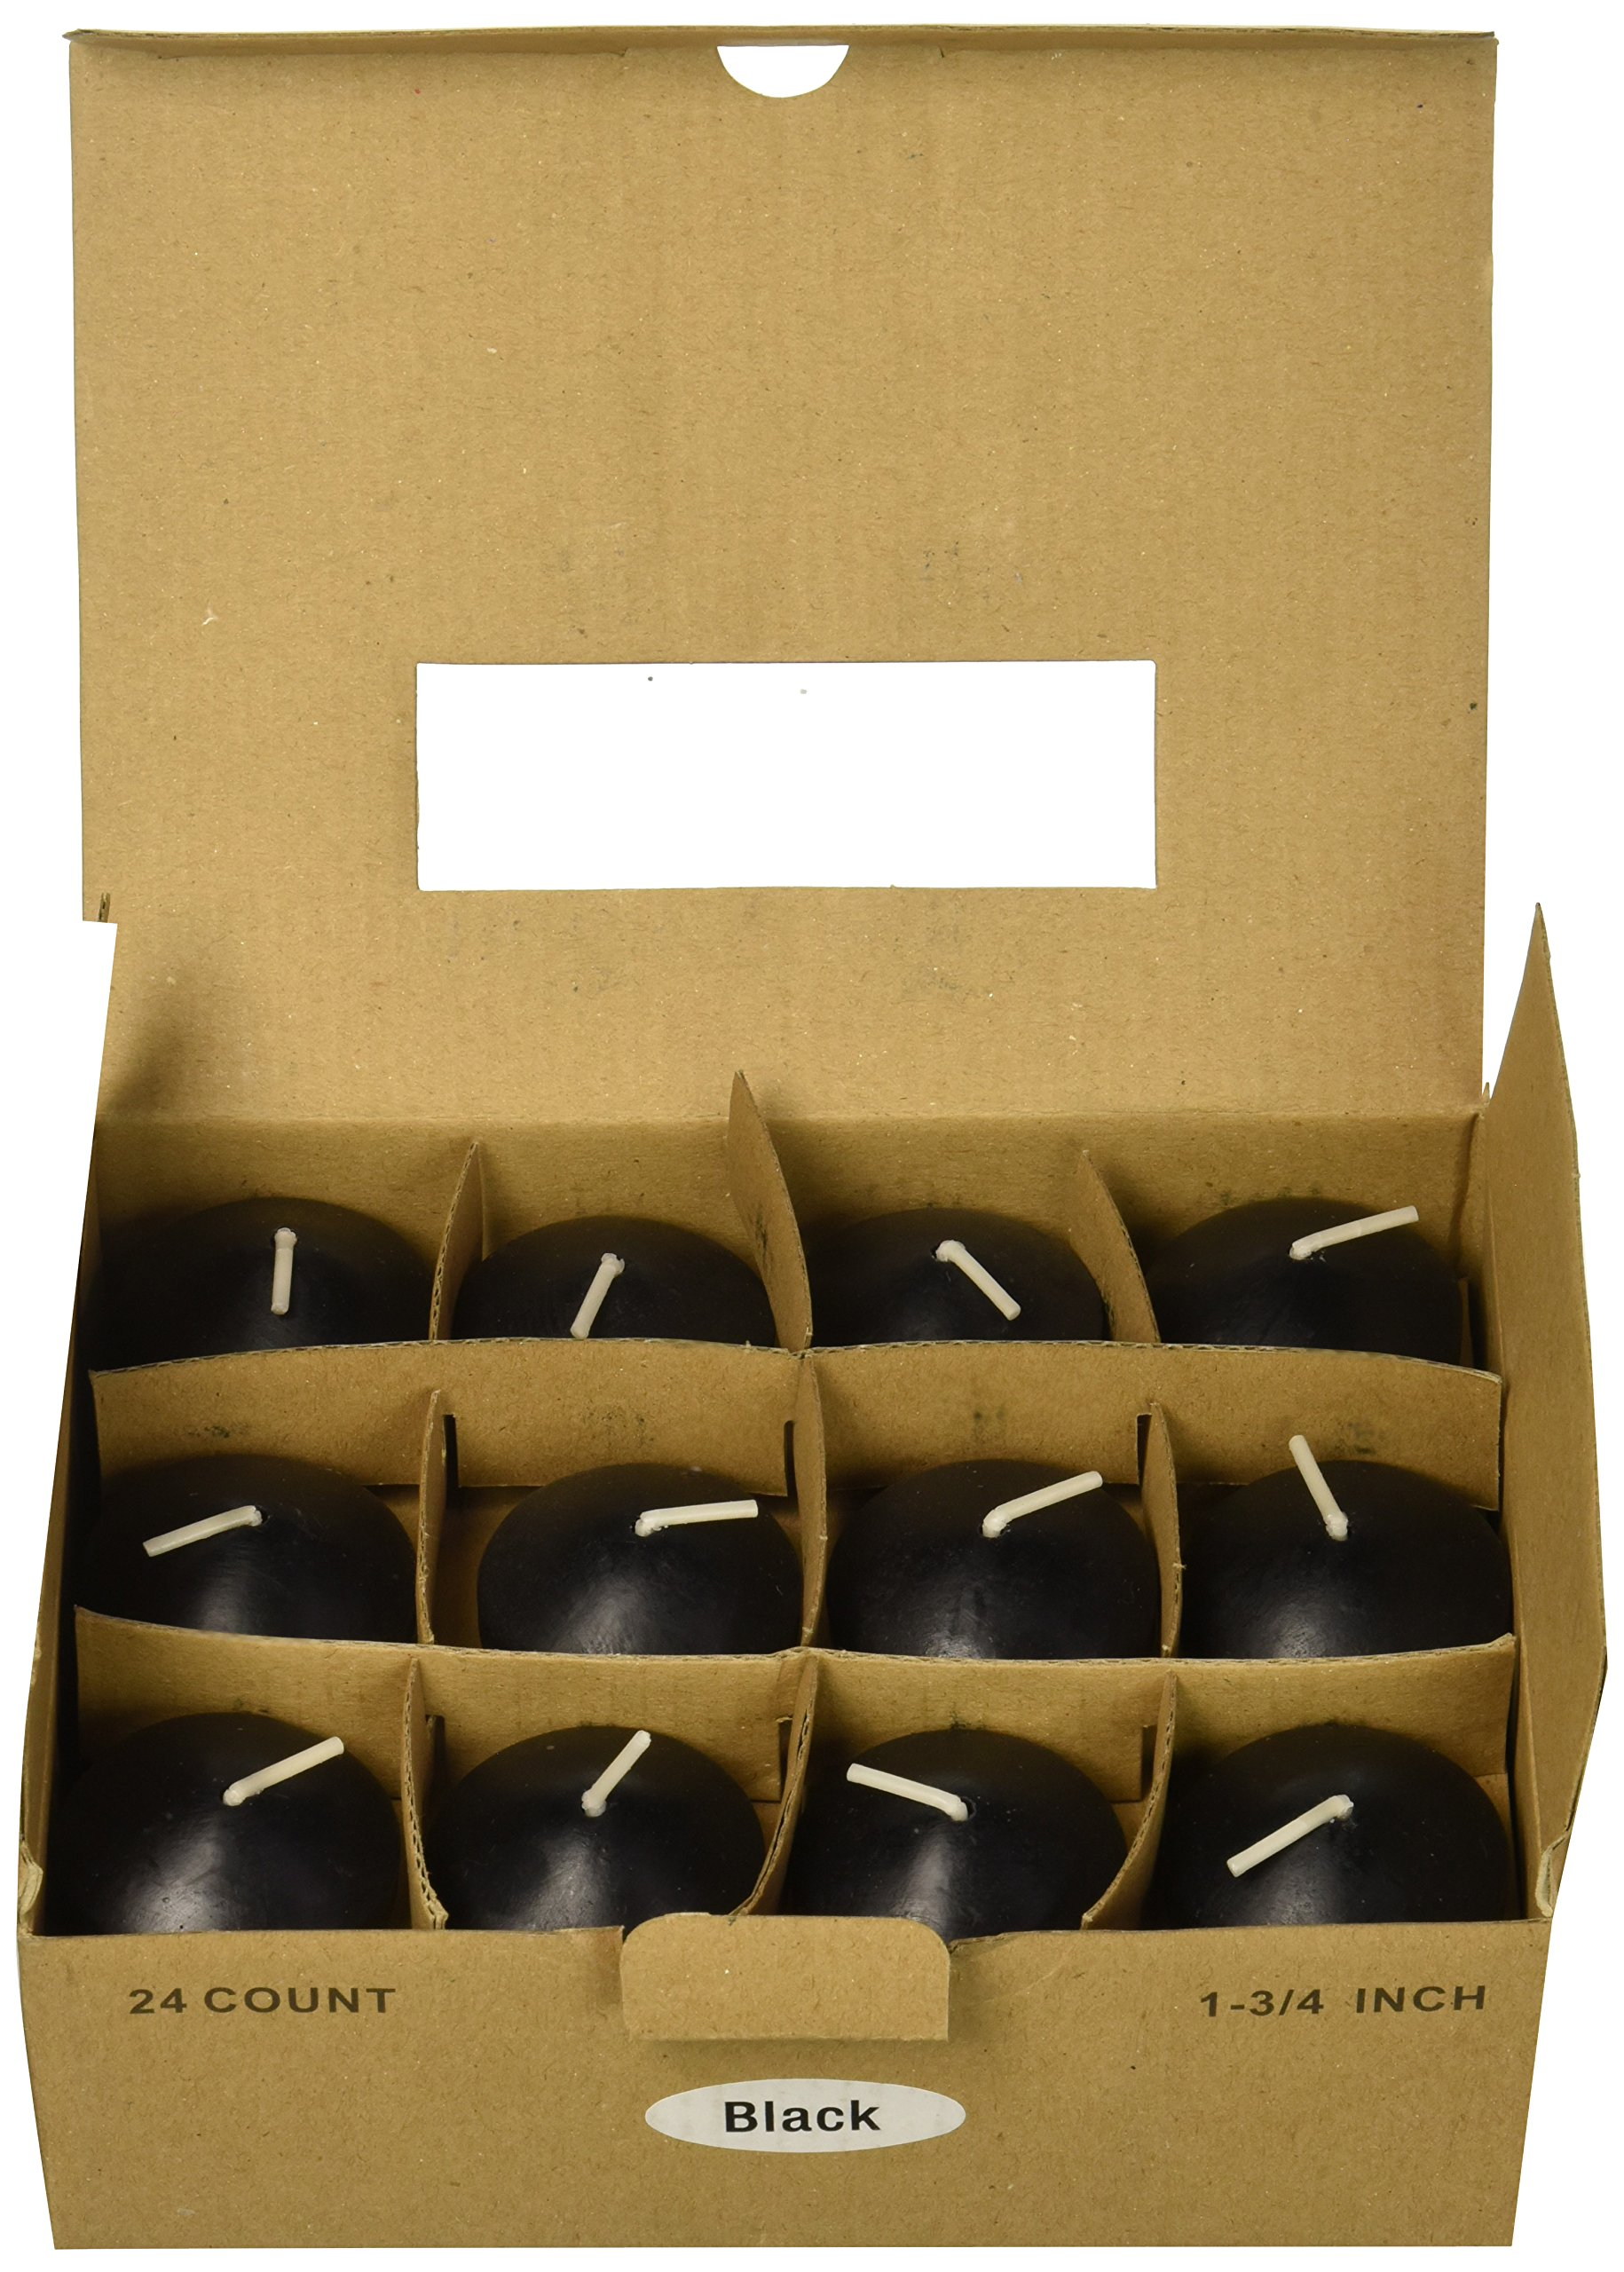 Zest Candle 24-Piece Floating Candles, 1.75-Inch, Black by Zest Candle (Image #2)